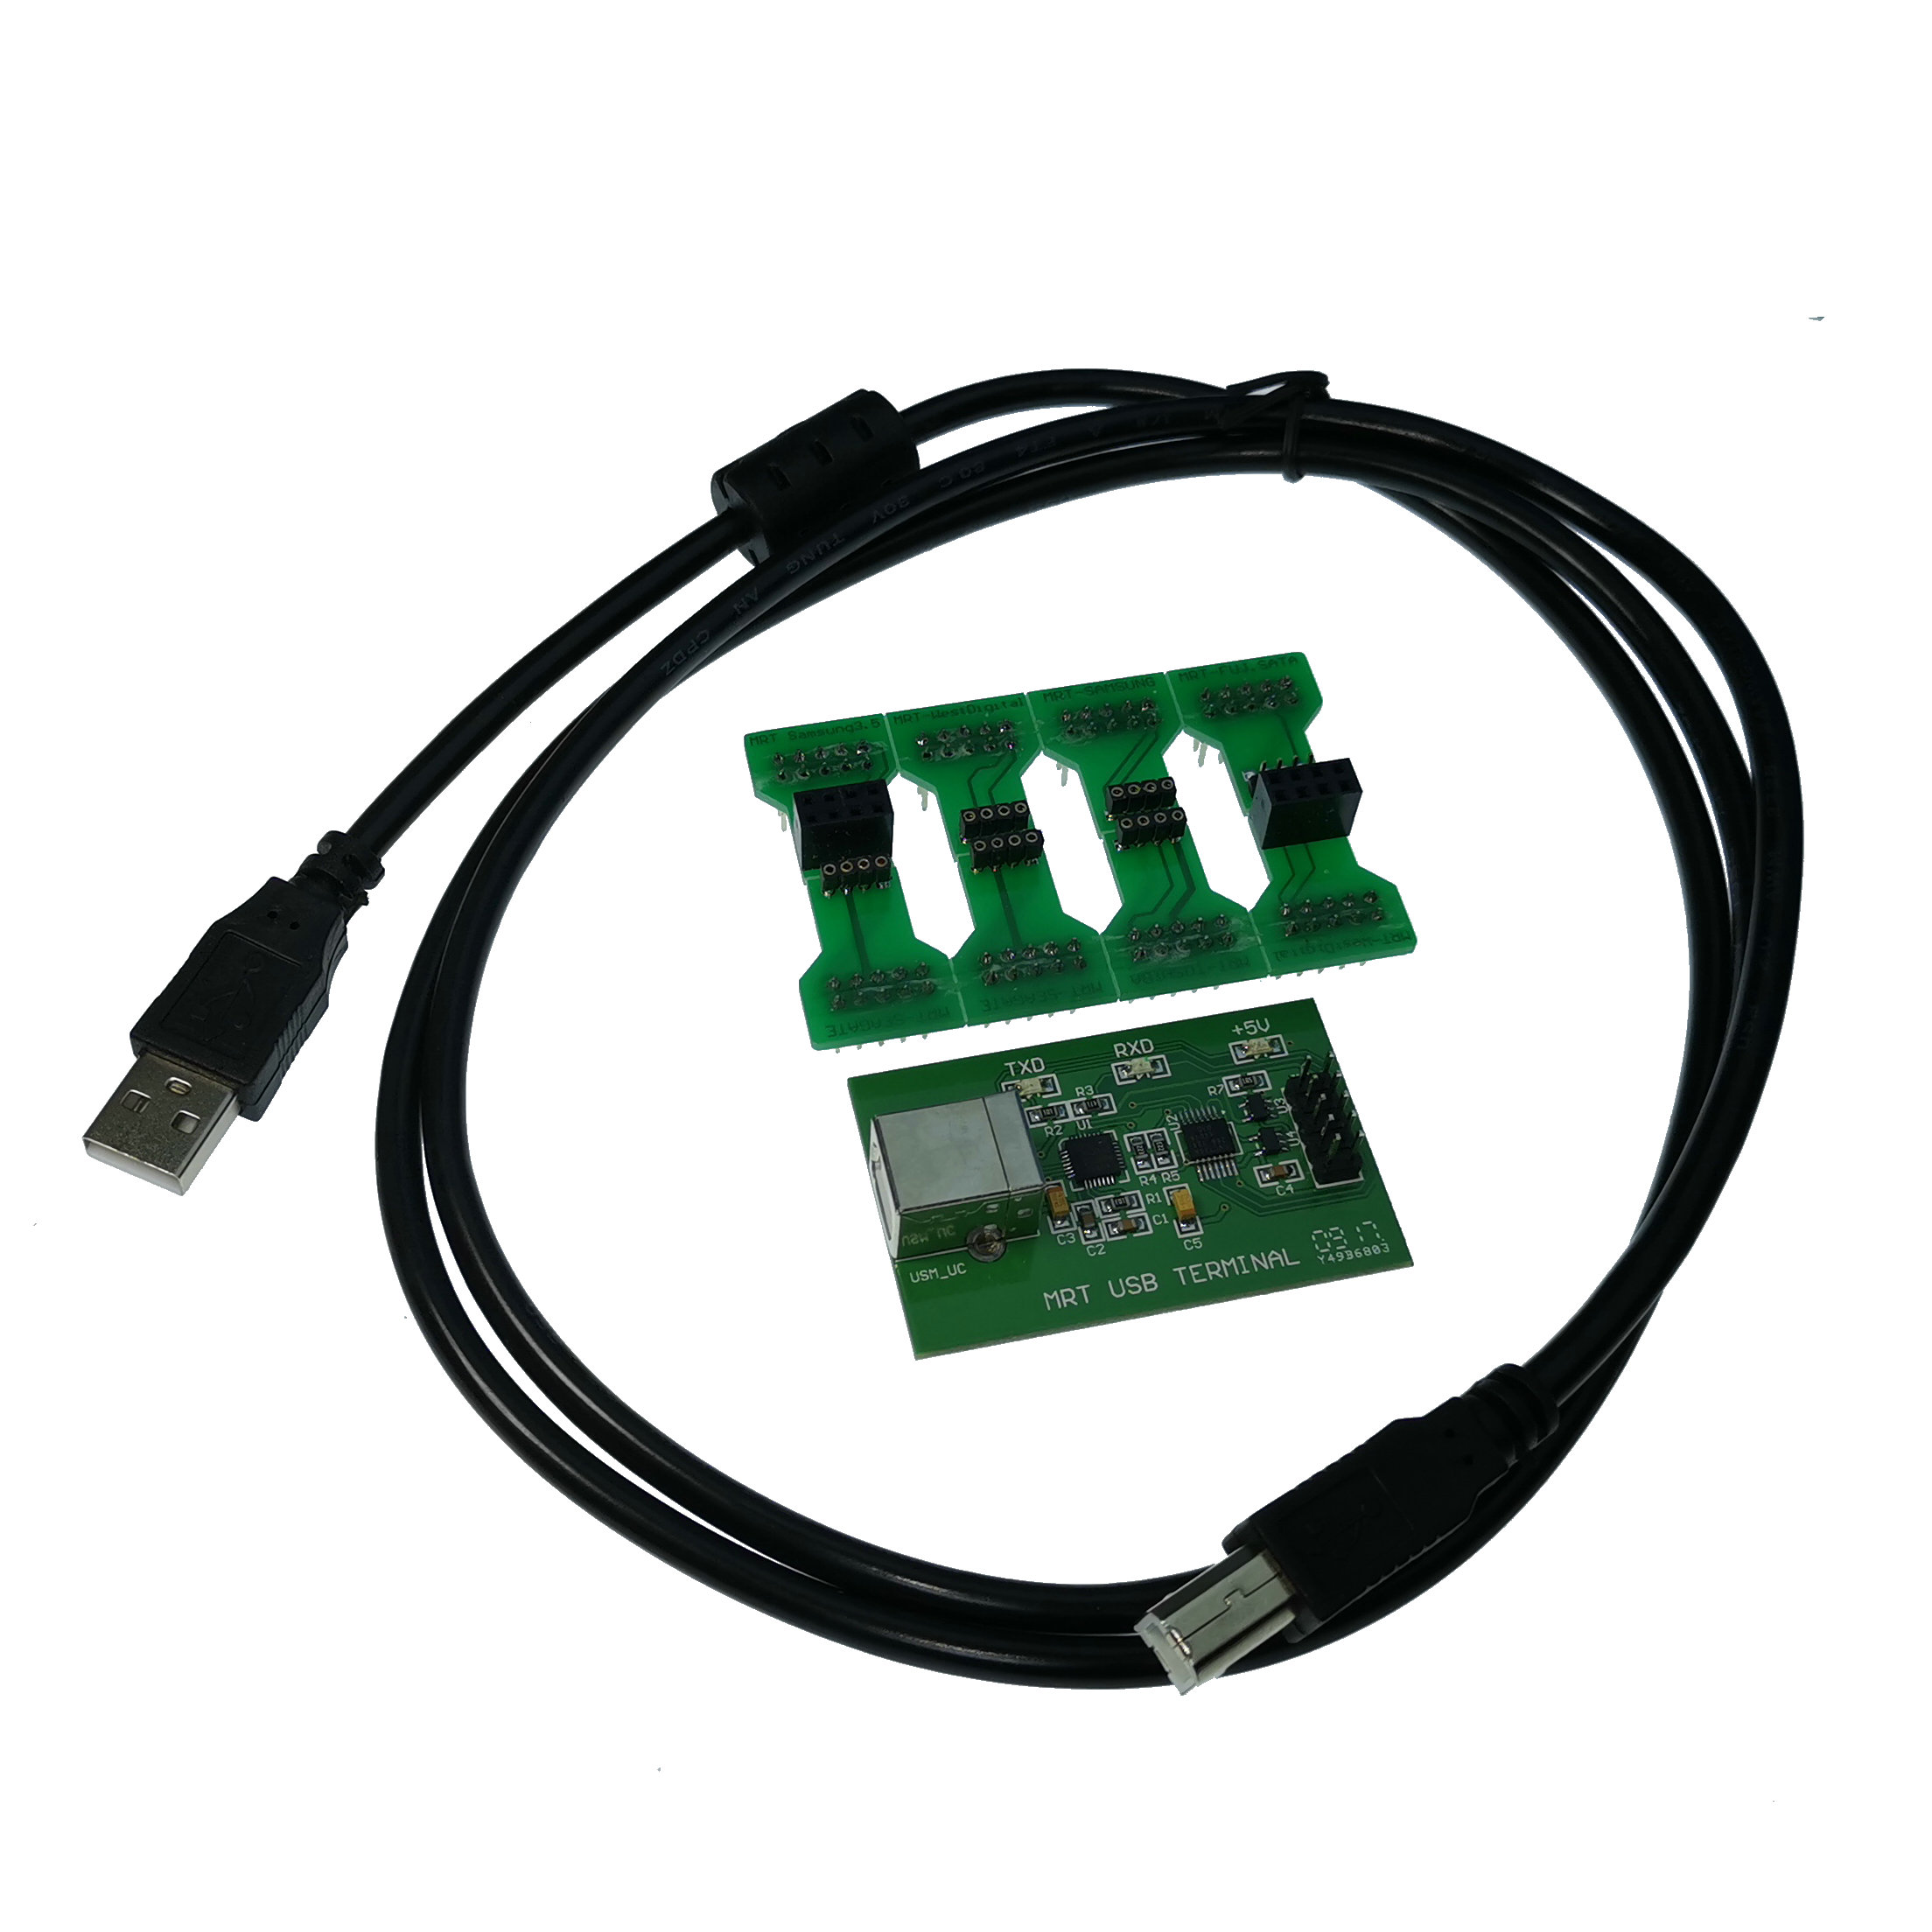 MRT USB Single Core Card + Command Base Includes Cable COM Connector To Support PC3000